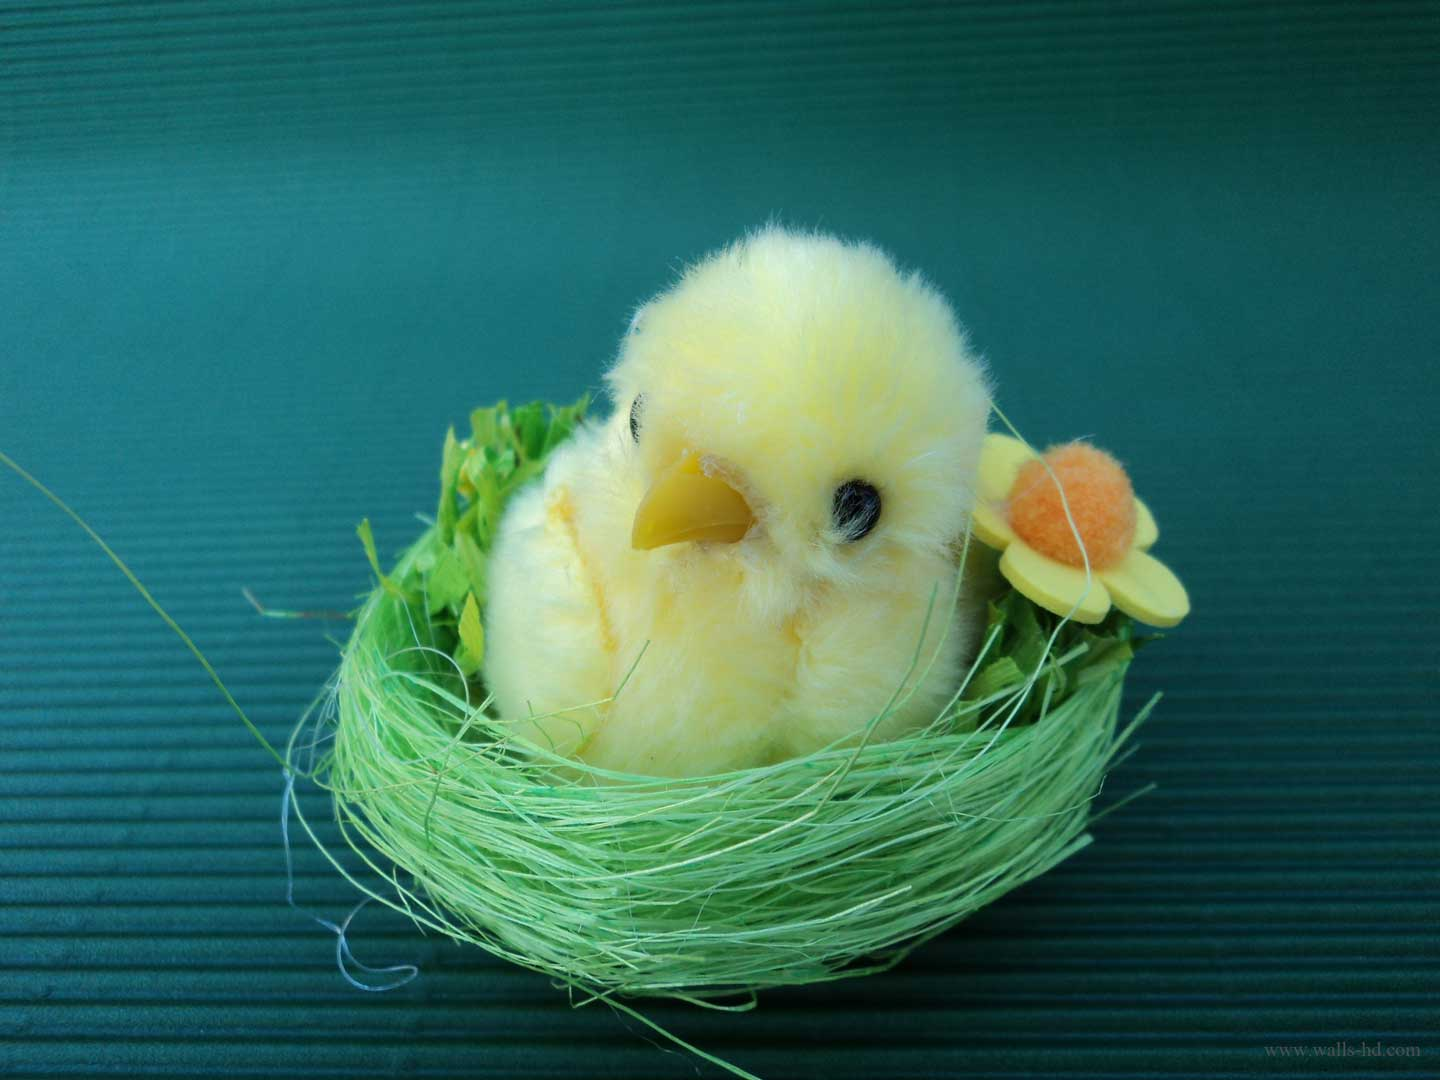 Wallpapers   Cute Easter chick wallpaper 1440x1080